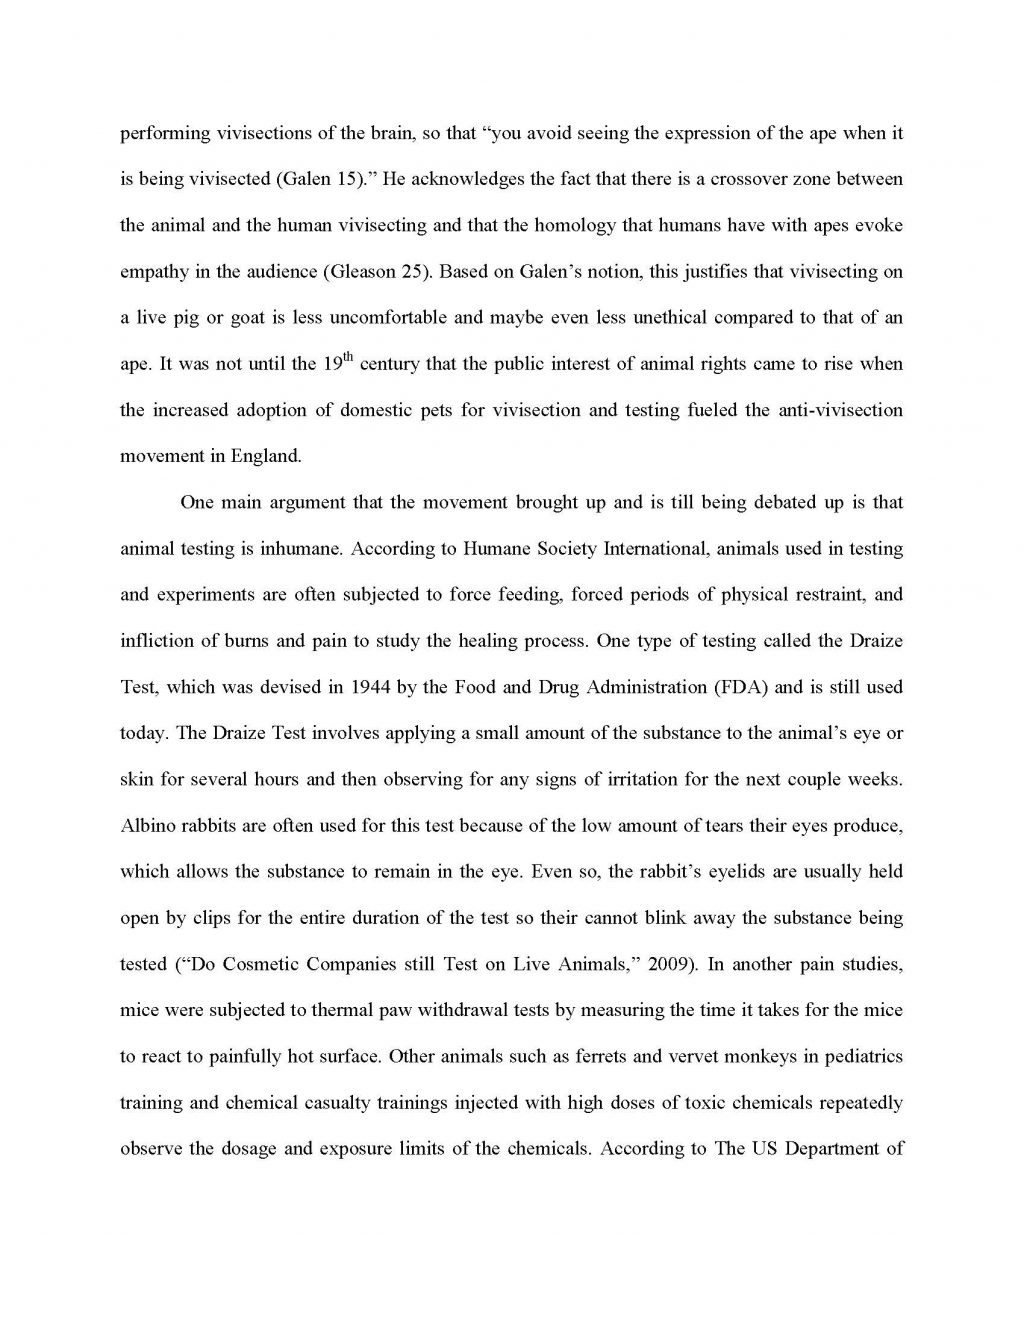 023 Animal Testing Argumentative Essay Title Paper Titles Outline Cosmetic Persuasive20 1024x1325 Persuasive Research Topics About Beautiful Animals Full